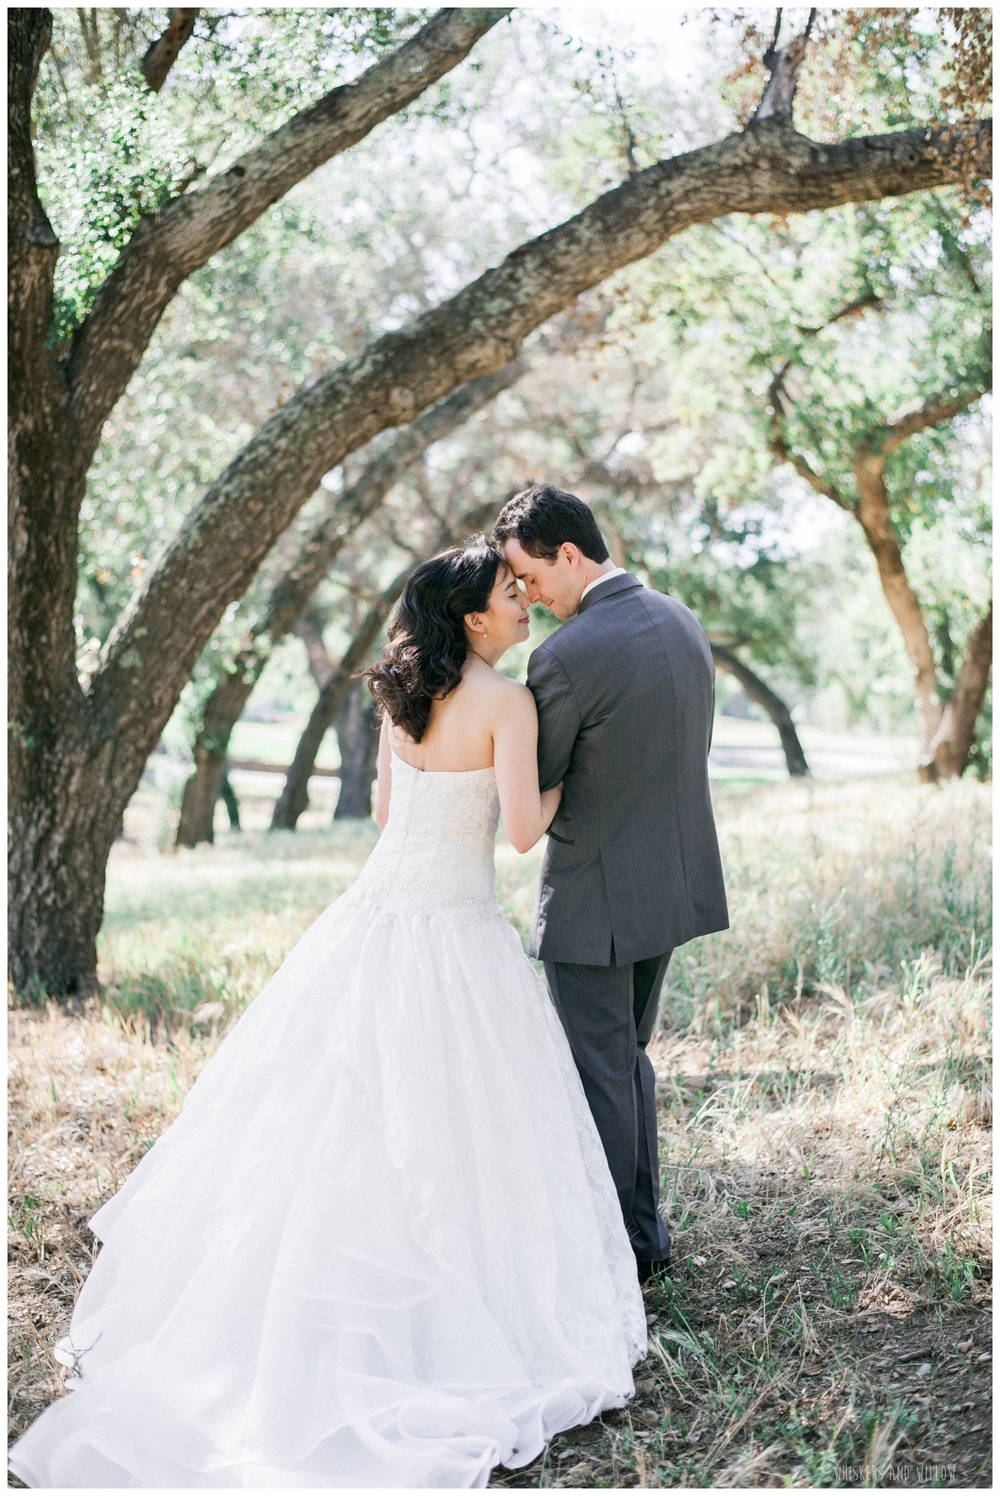 Mt Woodson Castle Wedding - Bride and Groom Portraits  - San Diego Wedding Photographer - Whiskers and Willow Photography